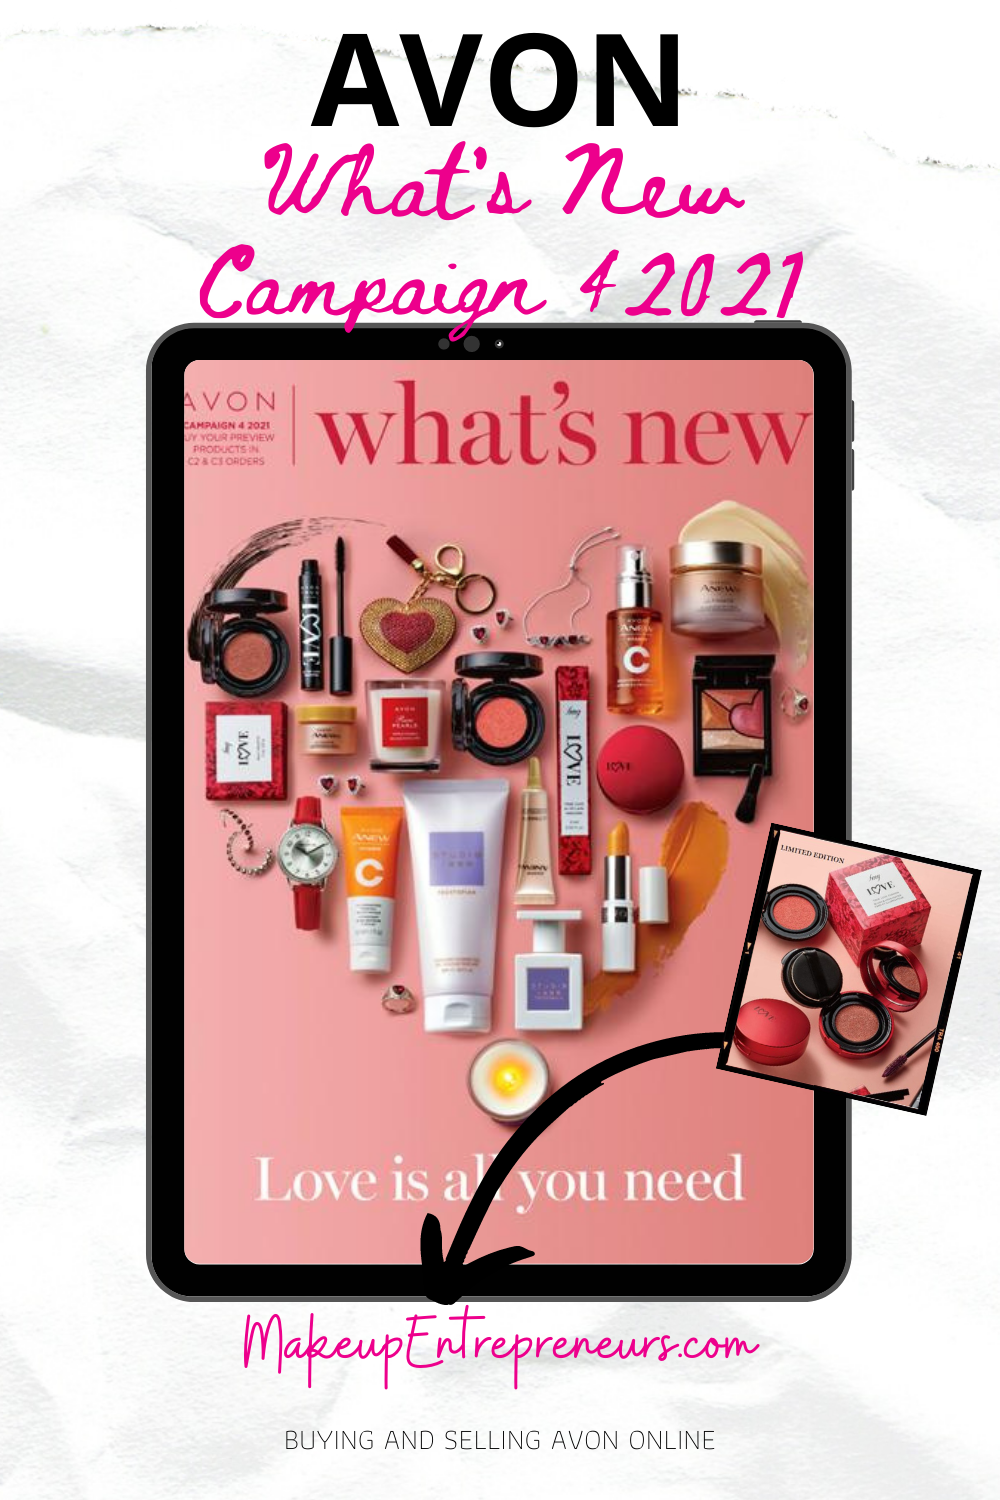 Avon What's New Campaign 4 2021